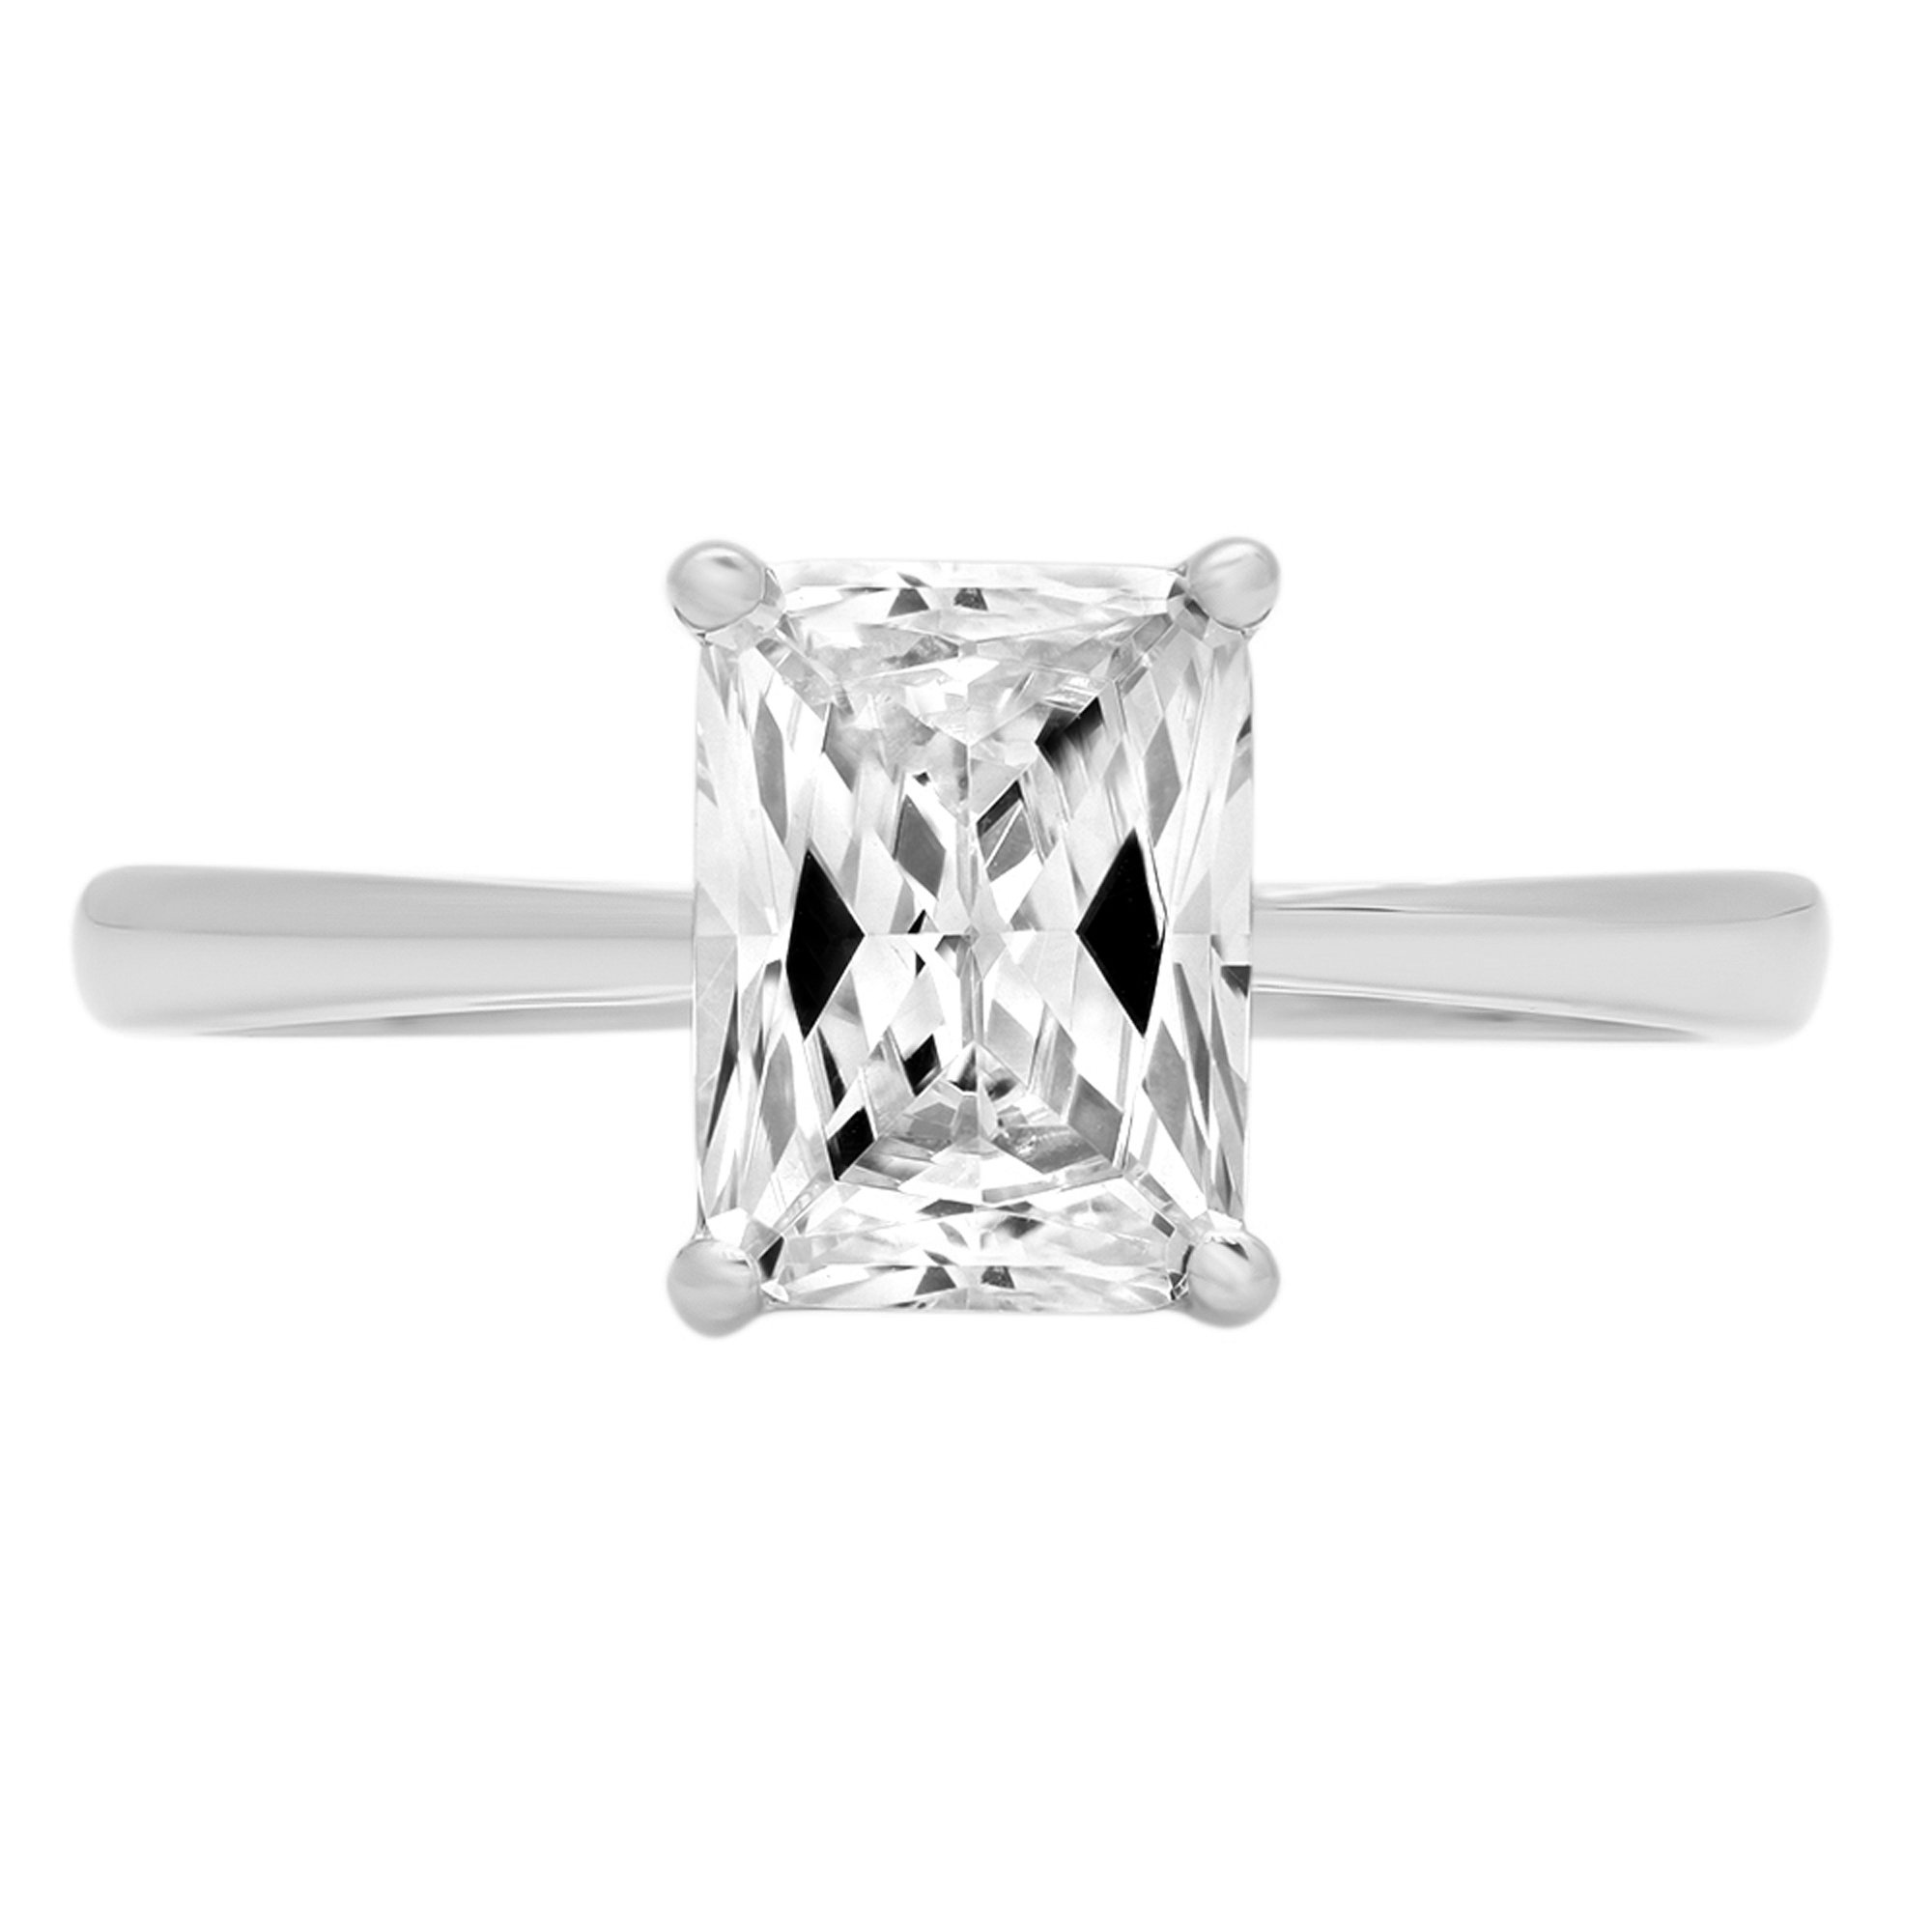 1.9ct Brilliant Emerald Cut Designer Solitaire Promise Anniversary Statement Engagement Wedding Bridal Promise Ring For Women Solid 14k White Gold, 6.25